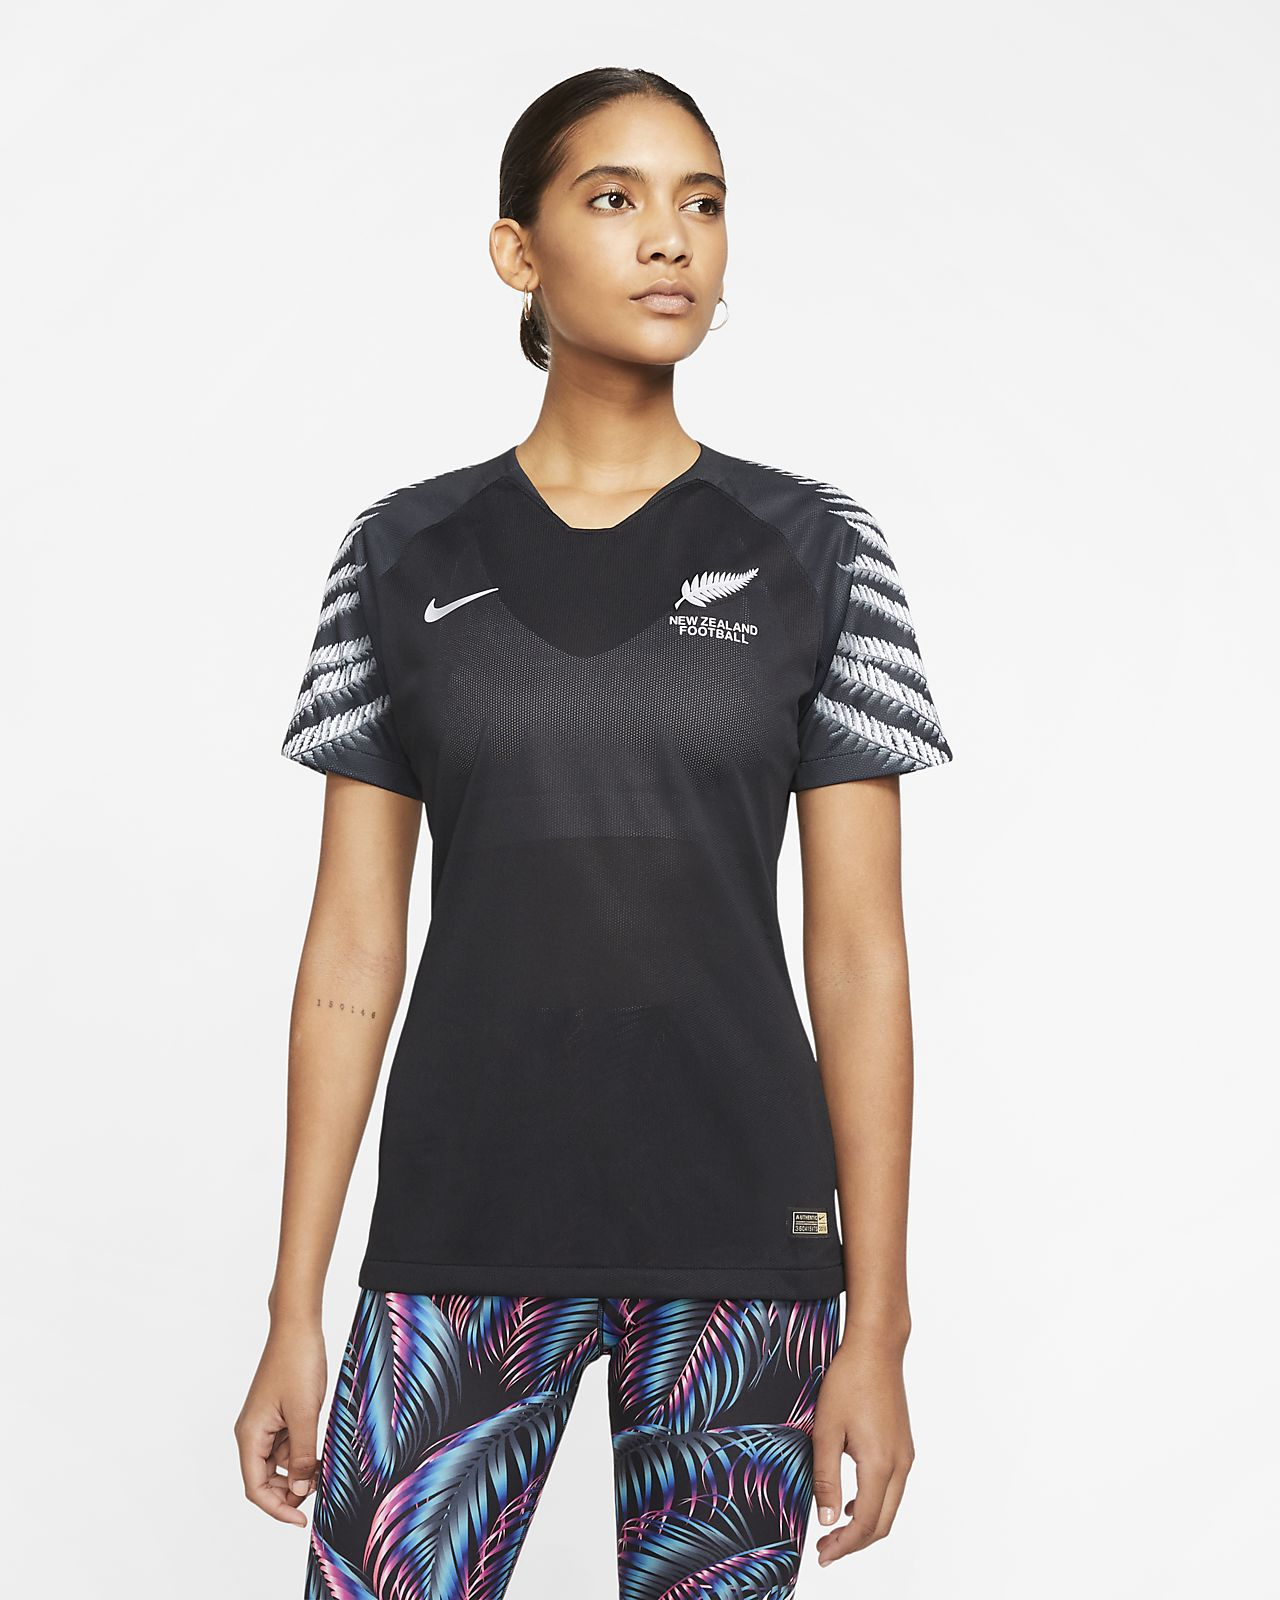 New Zealand 2019 Away Voetbalshirt voor dames